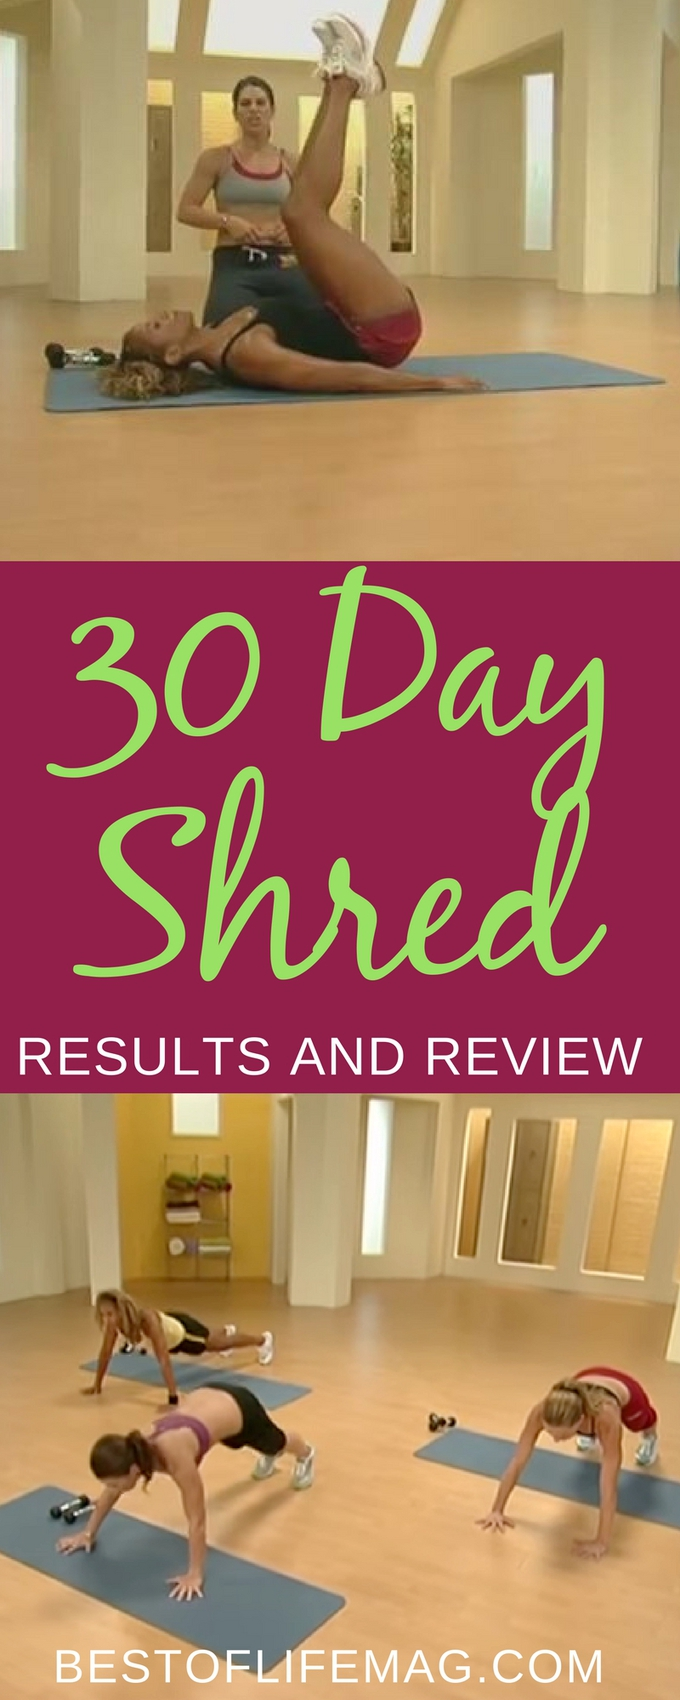 Wondering what Jillian Michael's 30 Day Shred results to expect? Look no further because we have everything you need right here. Tips for 30 Day Shred | Best Tips for 30 Day Shred | How to Get Results with 30 Day Shred | 30 Day Shred Review | Jillian Michaels 30 Day Shred Review | Jillian Michaels 30 Day Shred